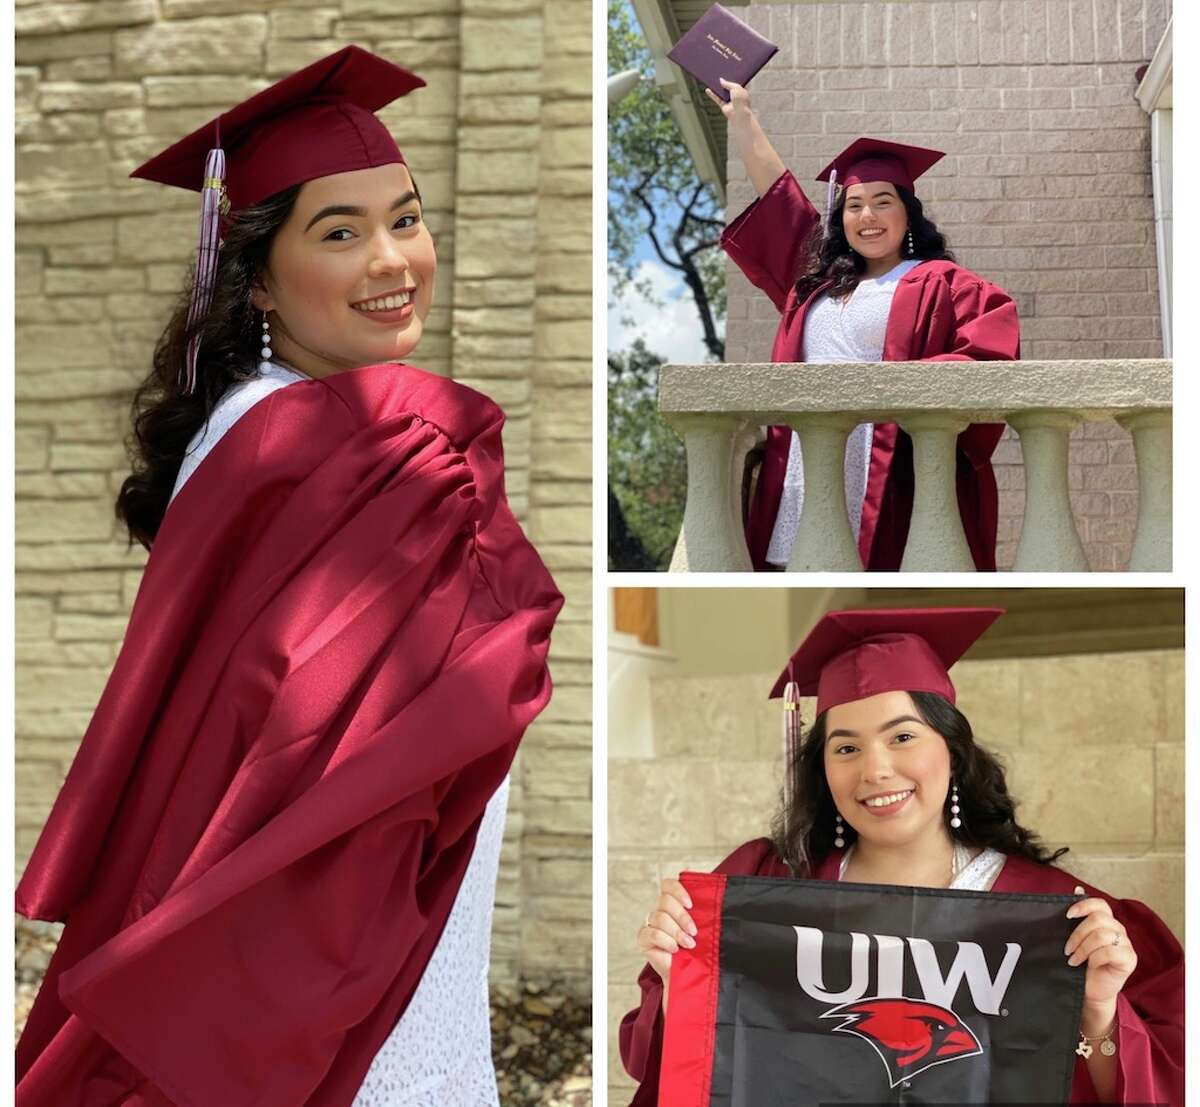 Congratulations Erin! ErinBocanegra, your hard work anddetermination has paid off! We are so proud of you.Congratulations on your acceptance intoThe University of the Incarnate Word. Love Always, BocanegraFamily